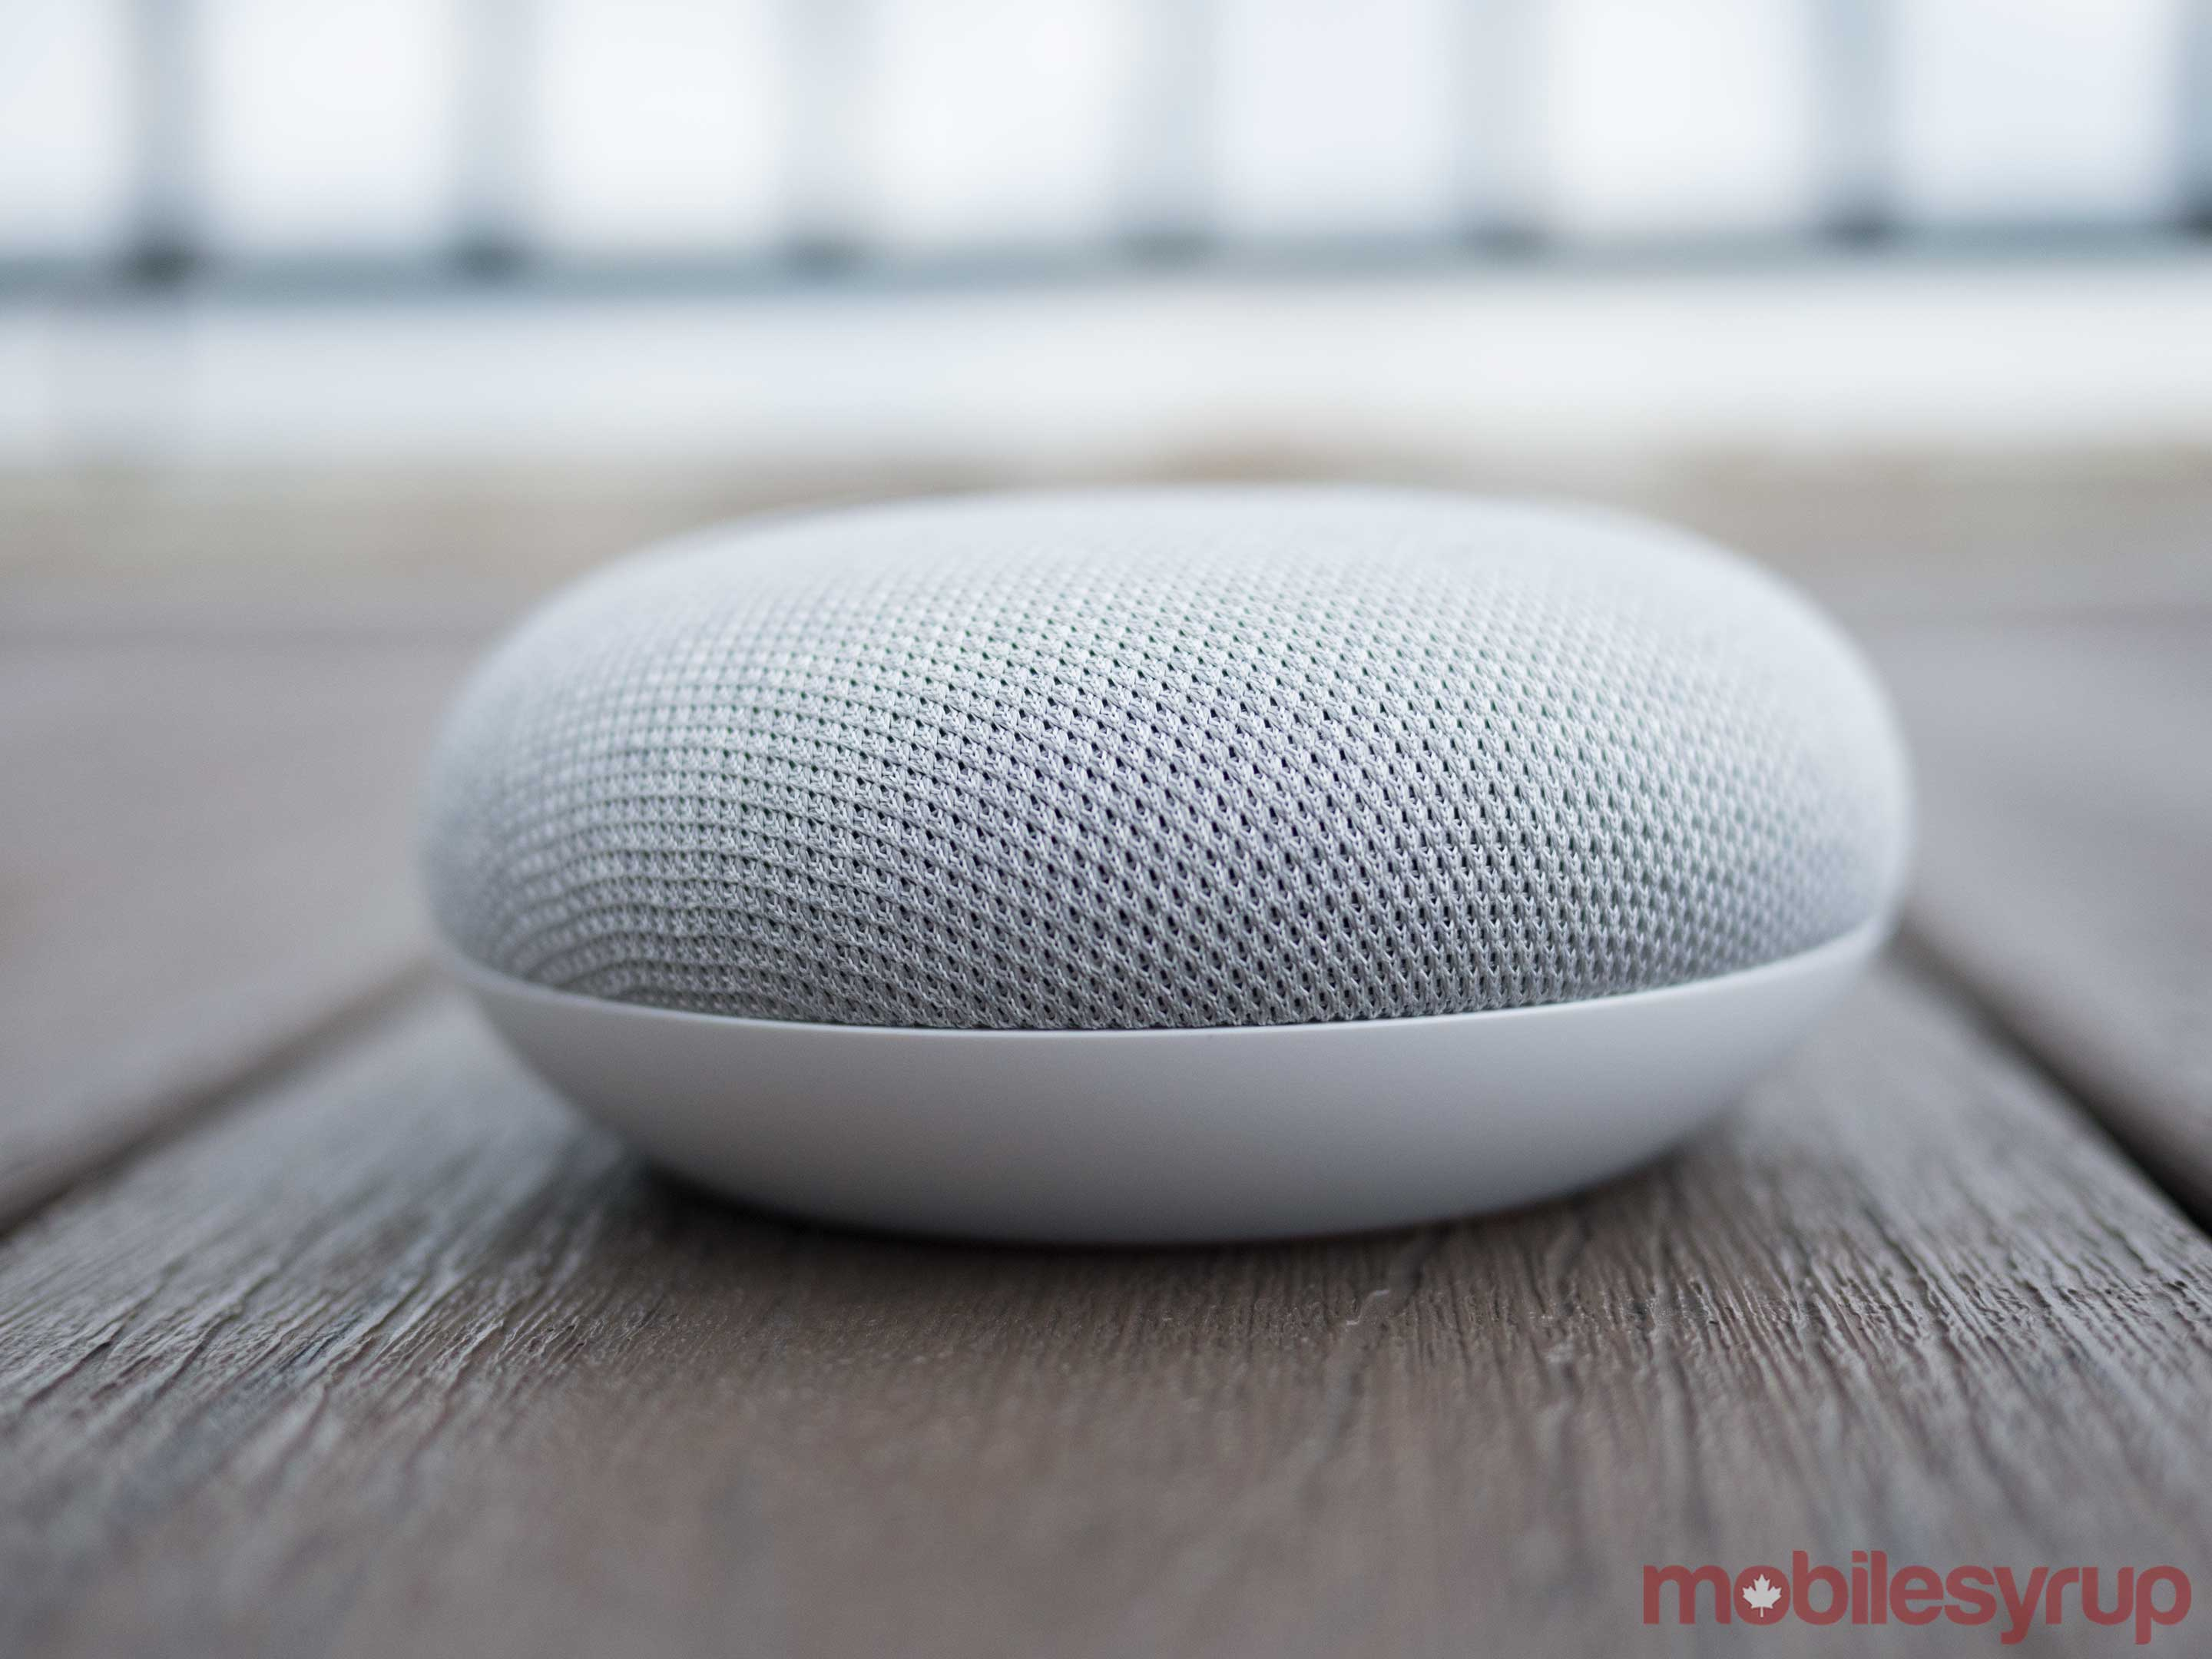 Google Home Mini side view